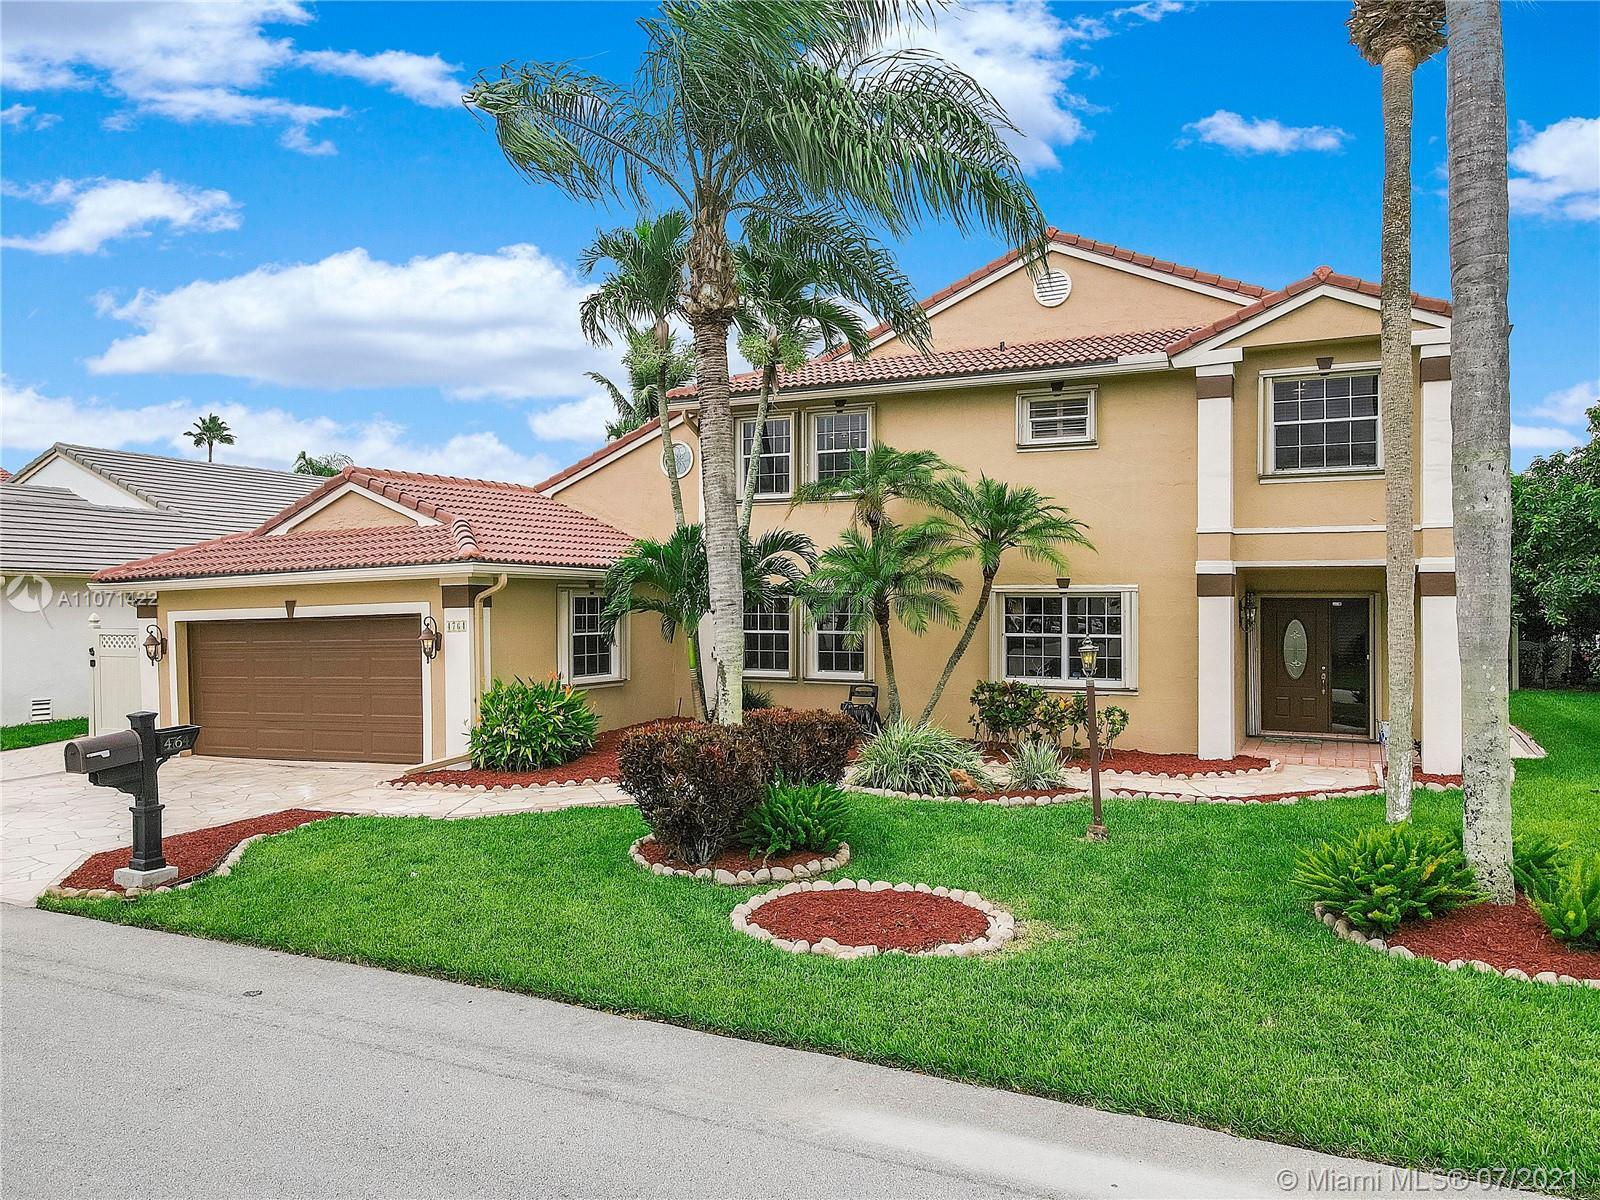 Amazing 3 bedroom, 2.5 bath home w/ office, bonus room, & air conditioned Florida room! You'll be th